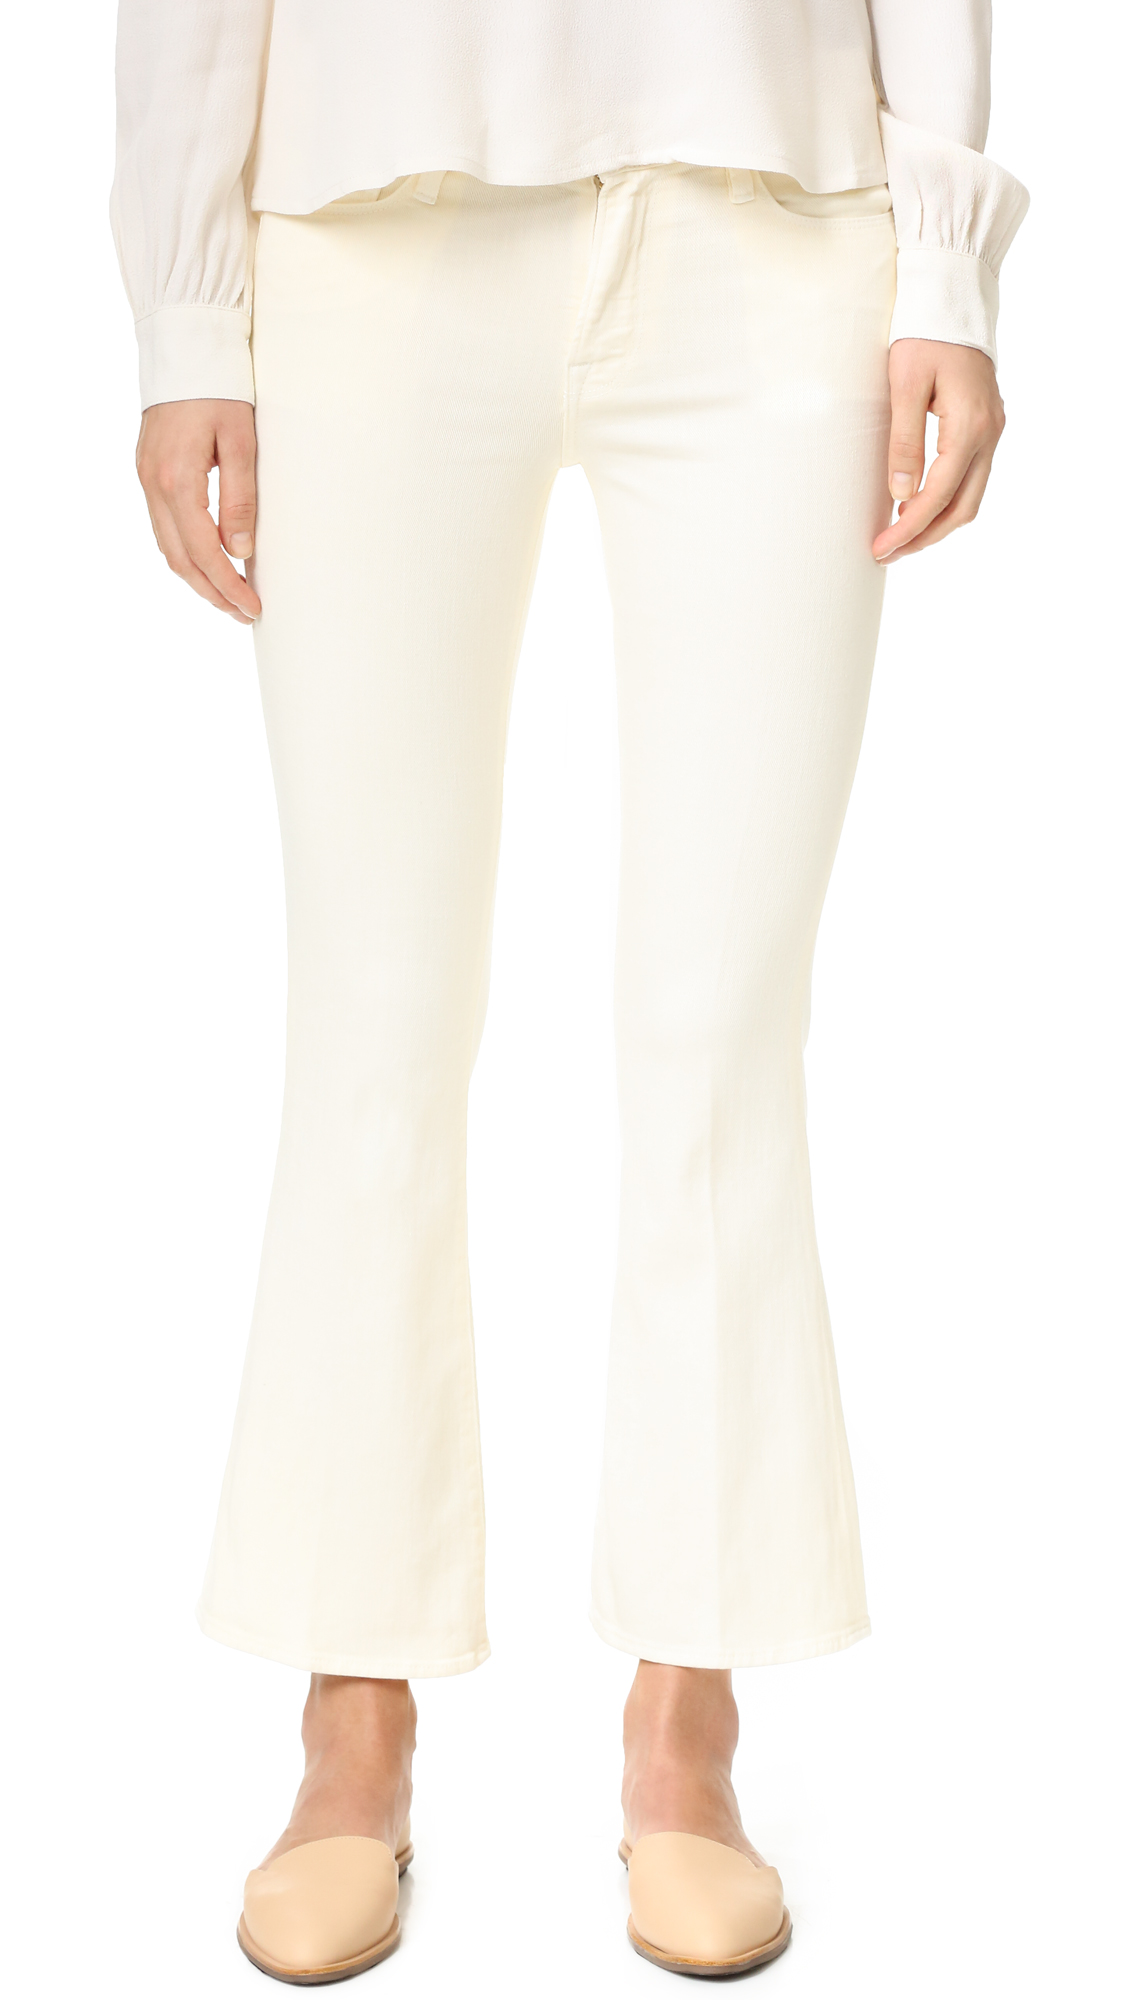 Cropped FRAME jeans in creamy colored denim. 5 pocket styling. Button closure and zip sly. Fabric: Stretch denim. 98% cotton/2% elastane. Imported materials. Made in the USA. Measurements Rise: 9.5in / 24cm Inseam: 26.75in / 68cm Leg opening: 19in / 48cm